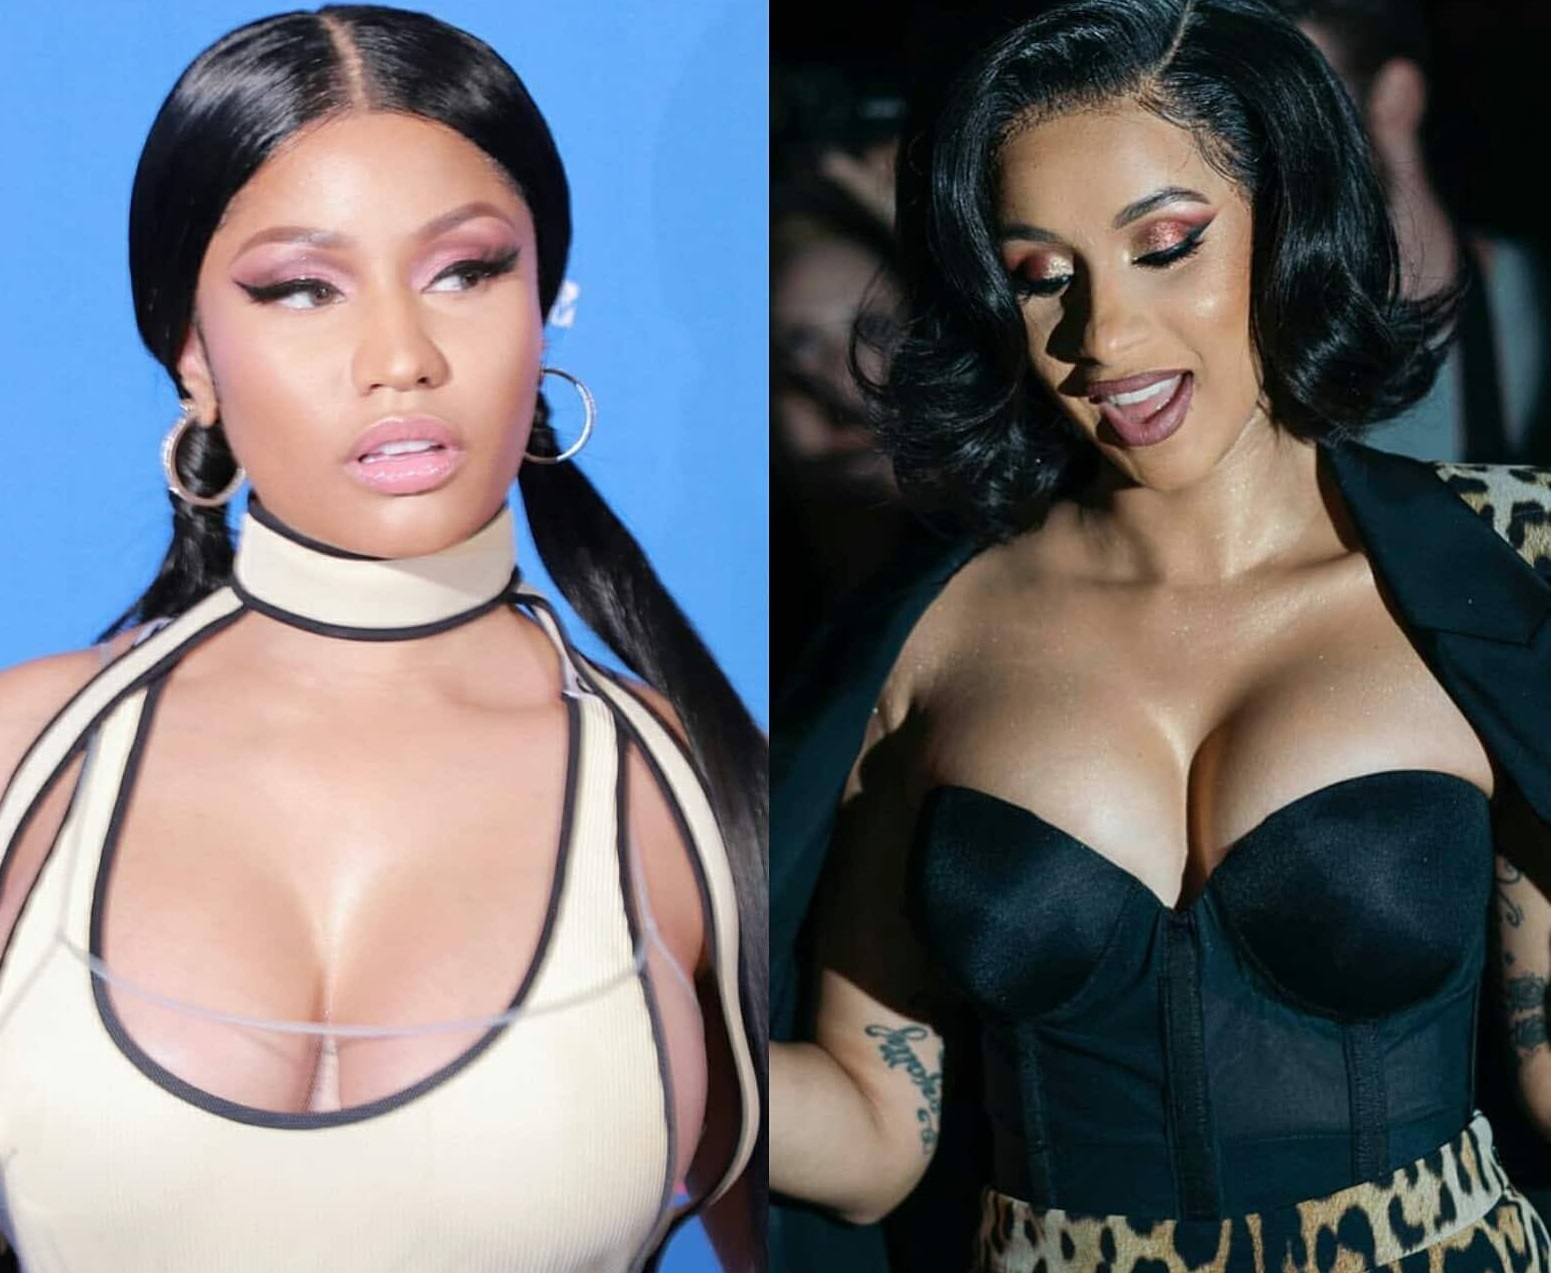 Nicki Minaj fires back at Cardi B